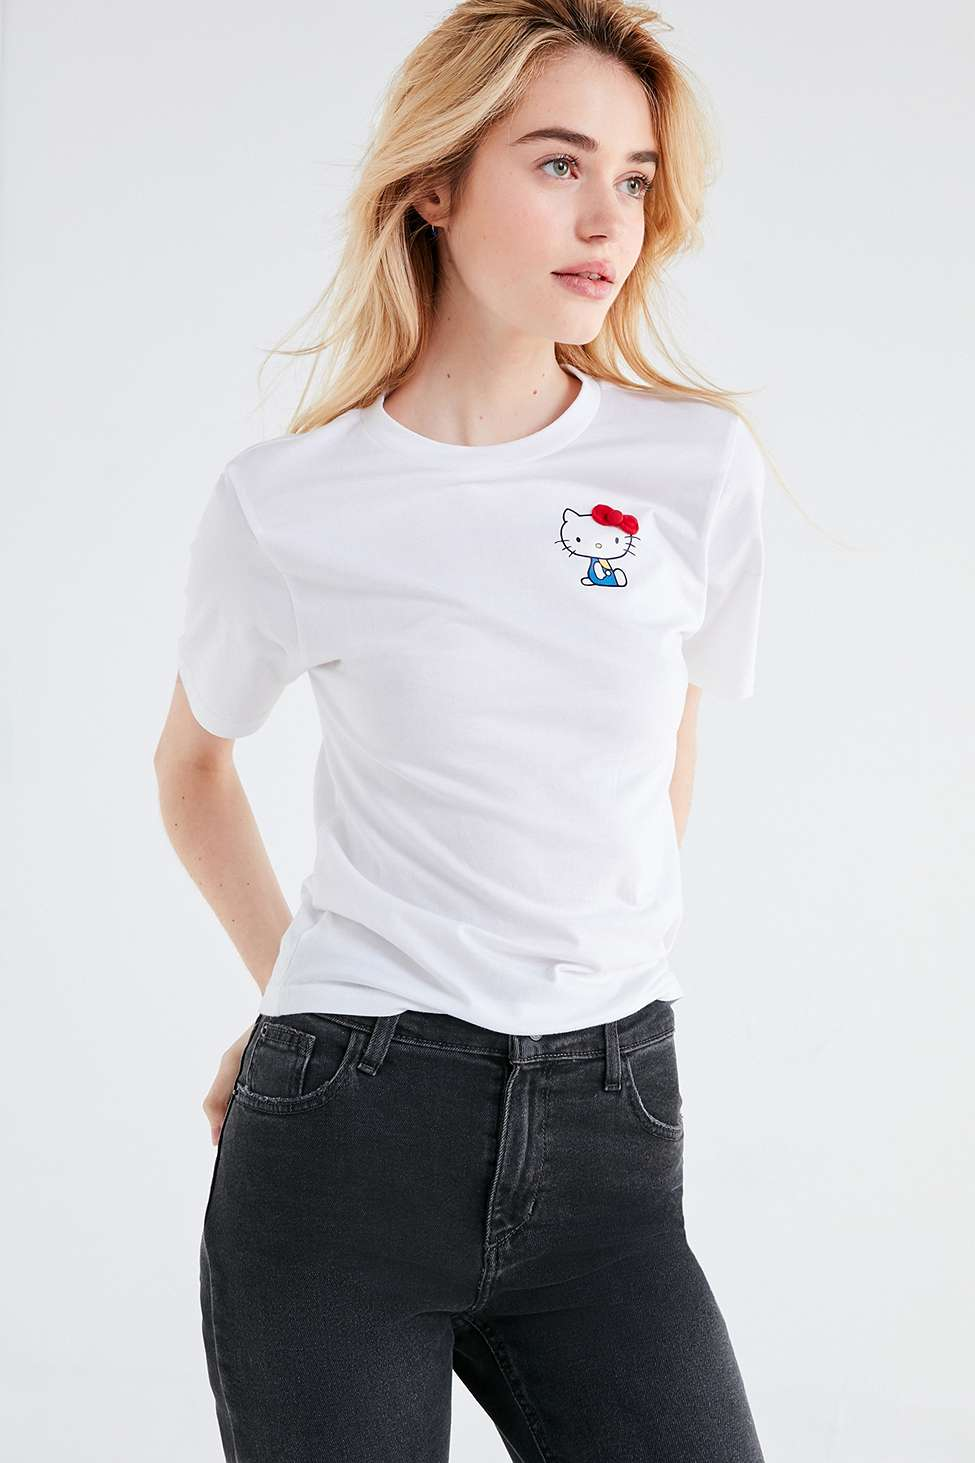 FILA X Sanrio For UO Hello Kitty T-Shirt, White